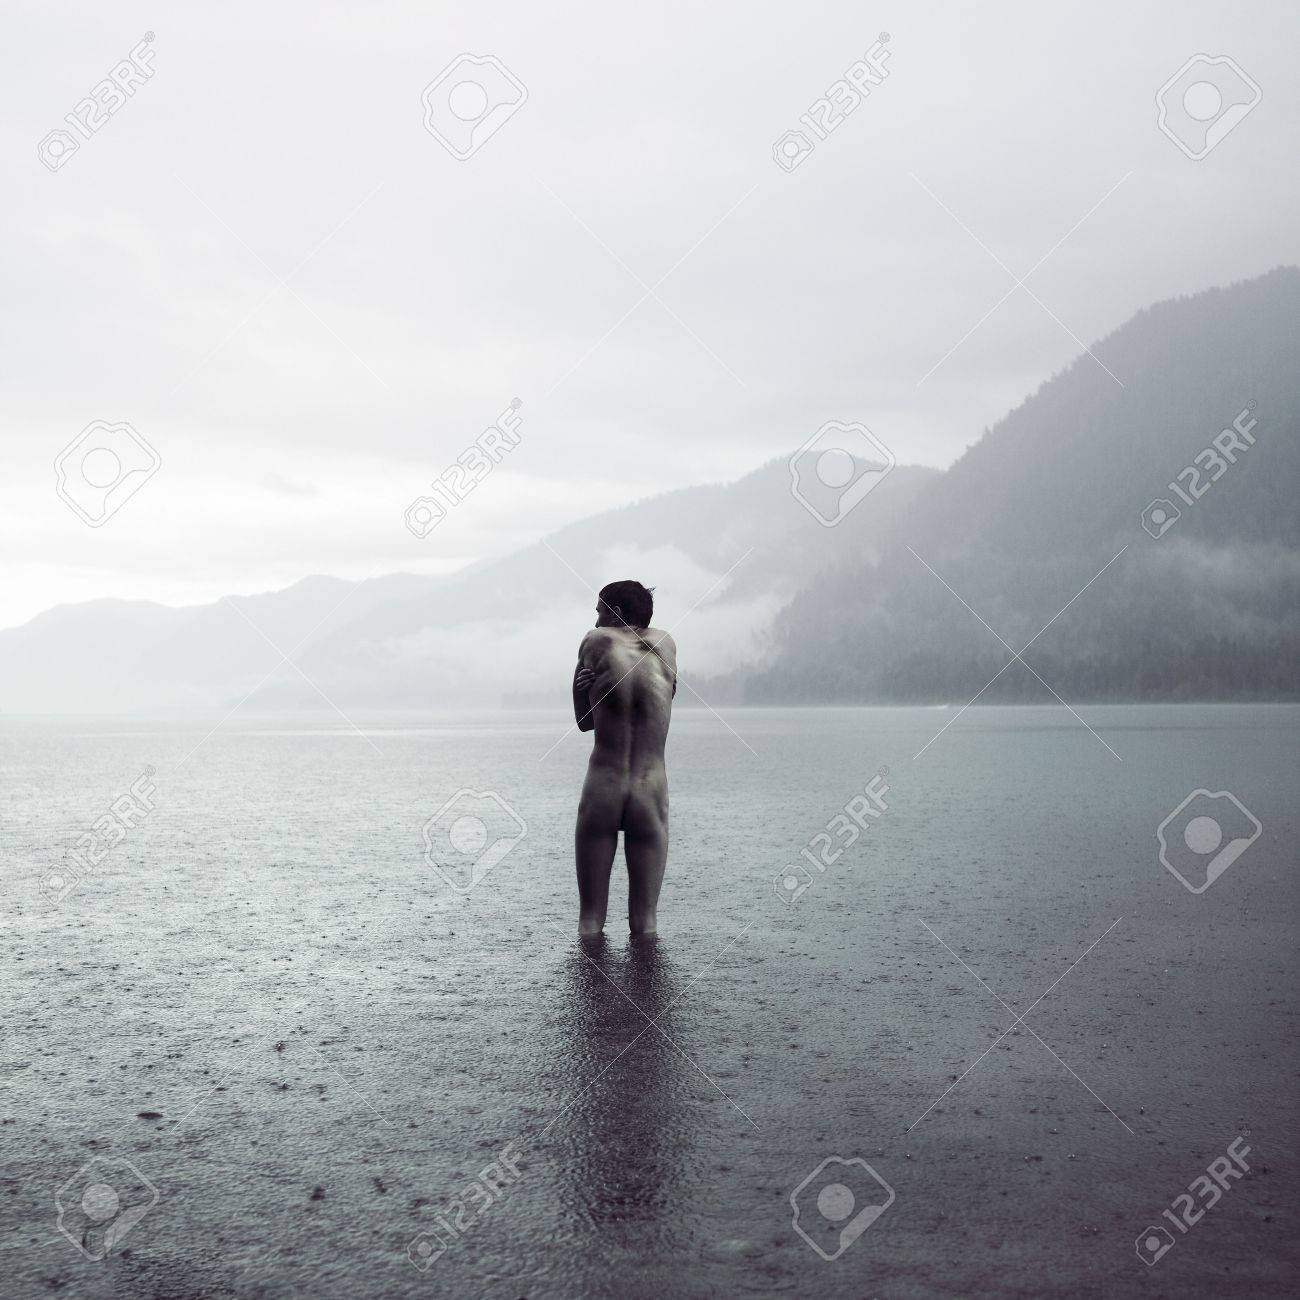 Picturesque landscape. Young man in lake - 5384172